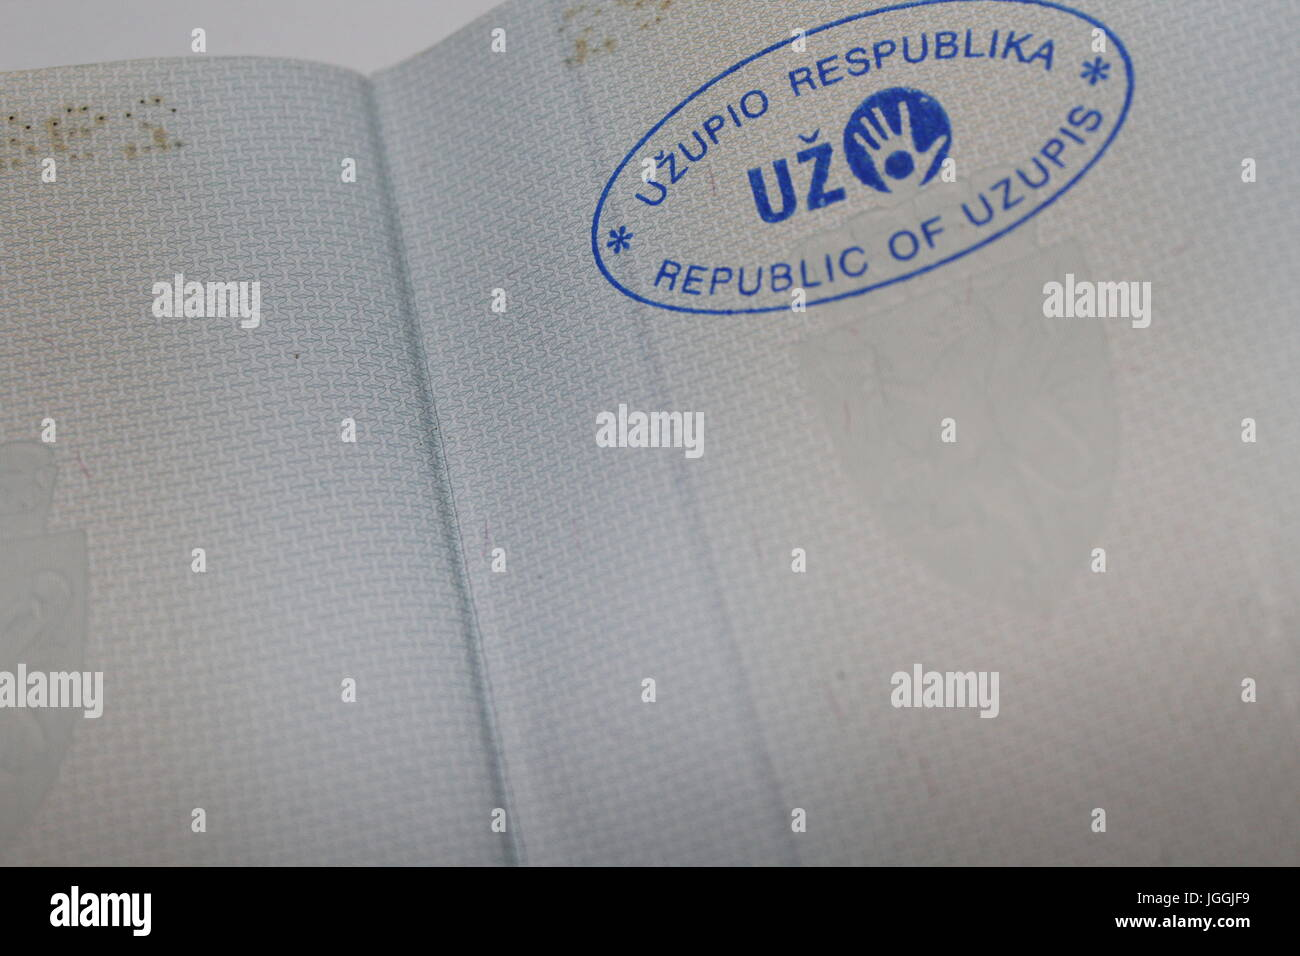 Passport stamp from the self-proclaimed microstate Užupis, located in the lithuanian capital Vilnius - Stock Image